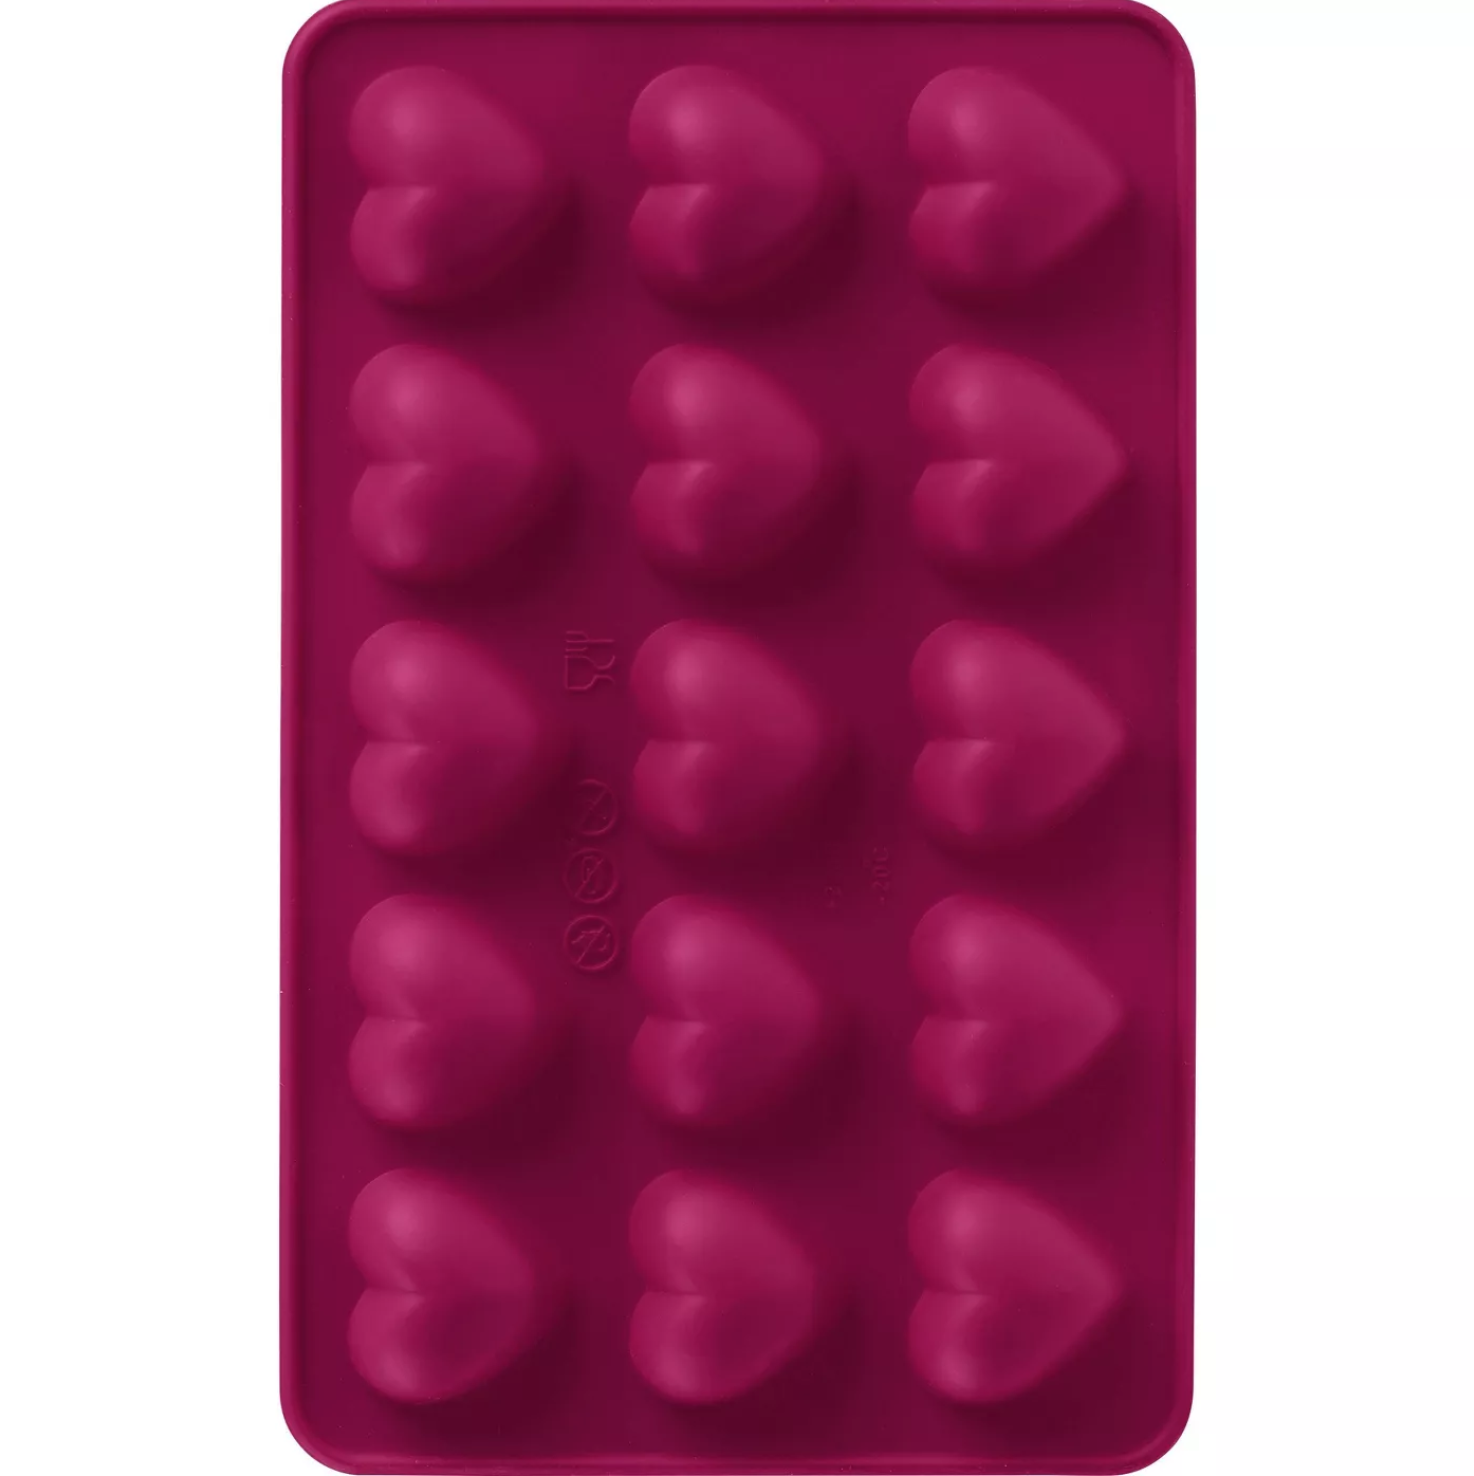 Trudeau Heart Molds in red